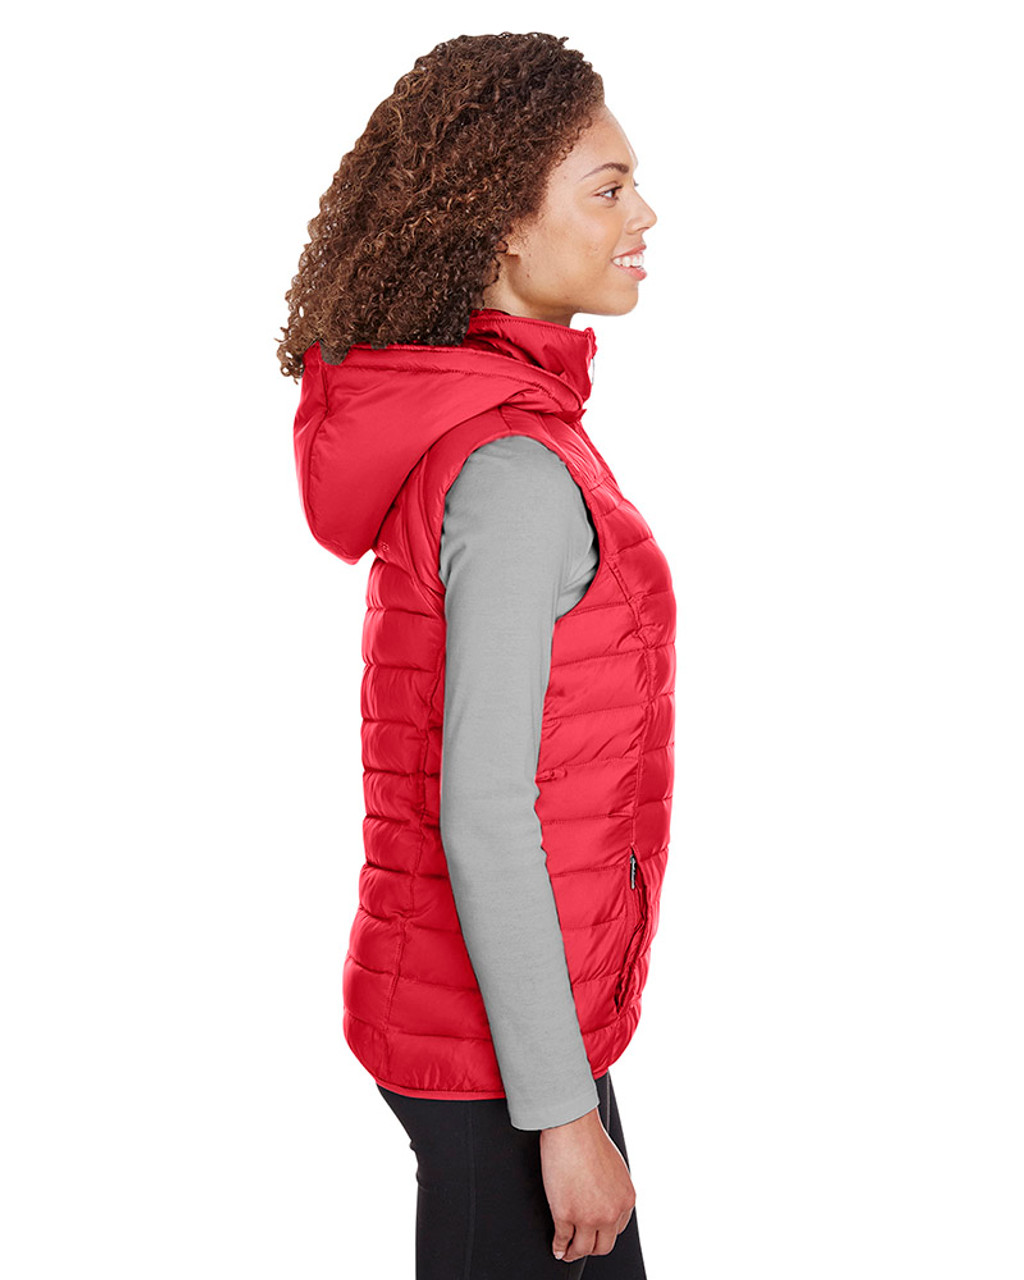 Red - side, S16641 Spyder Ladies' Supreme Puffer Vest | Blankclothing.ca